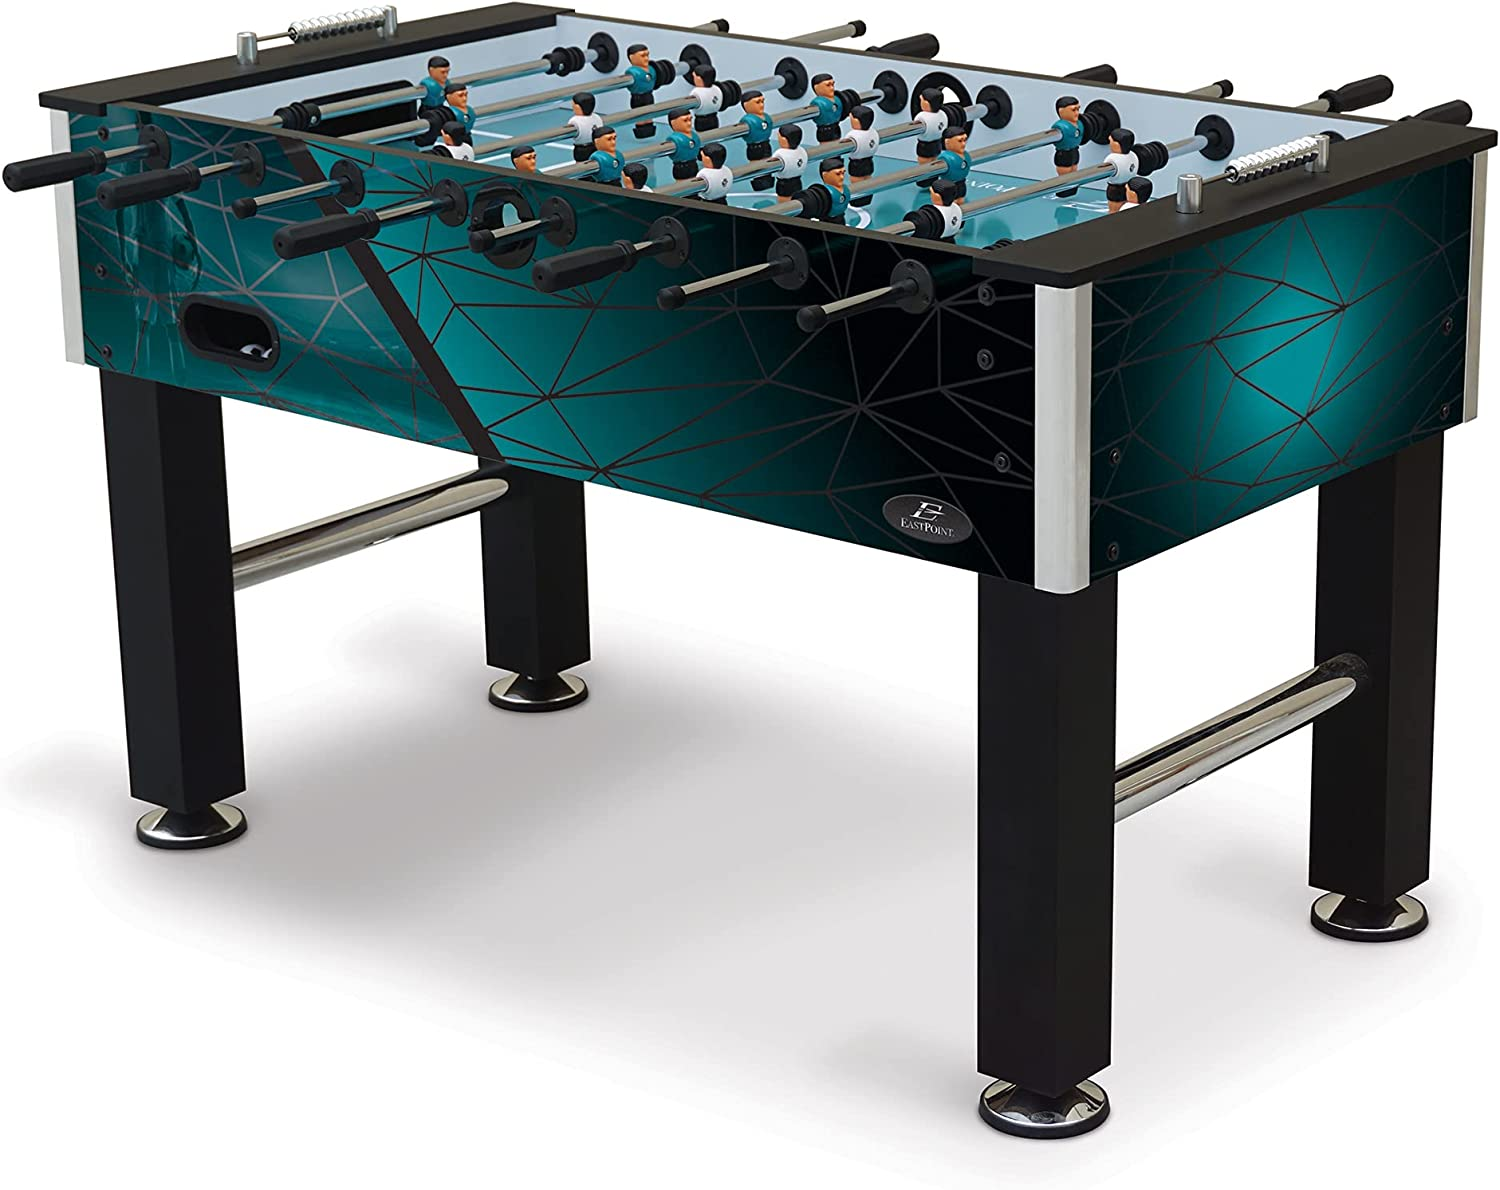 EastPoint Sports Official Competition Size Deluxe Foosball Table for Multiplayer Indoor Play - Includes 4 Foosball Balls – Great for Your Basement, Garage, Family Game Room, Man cave, or Living Room : Sports & Outdoors